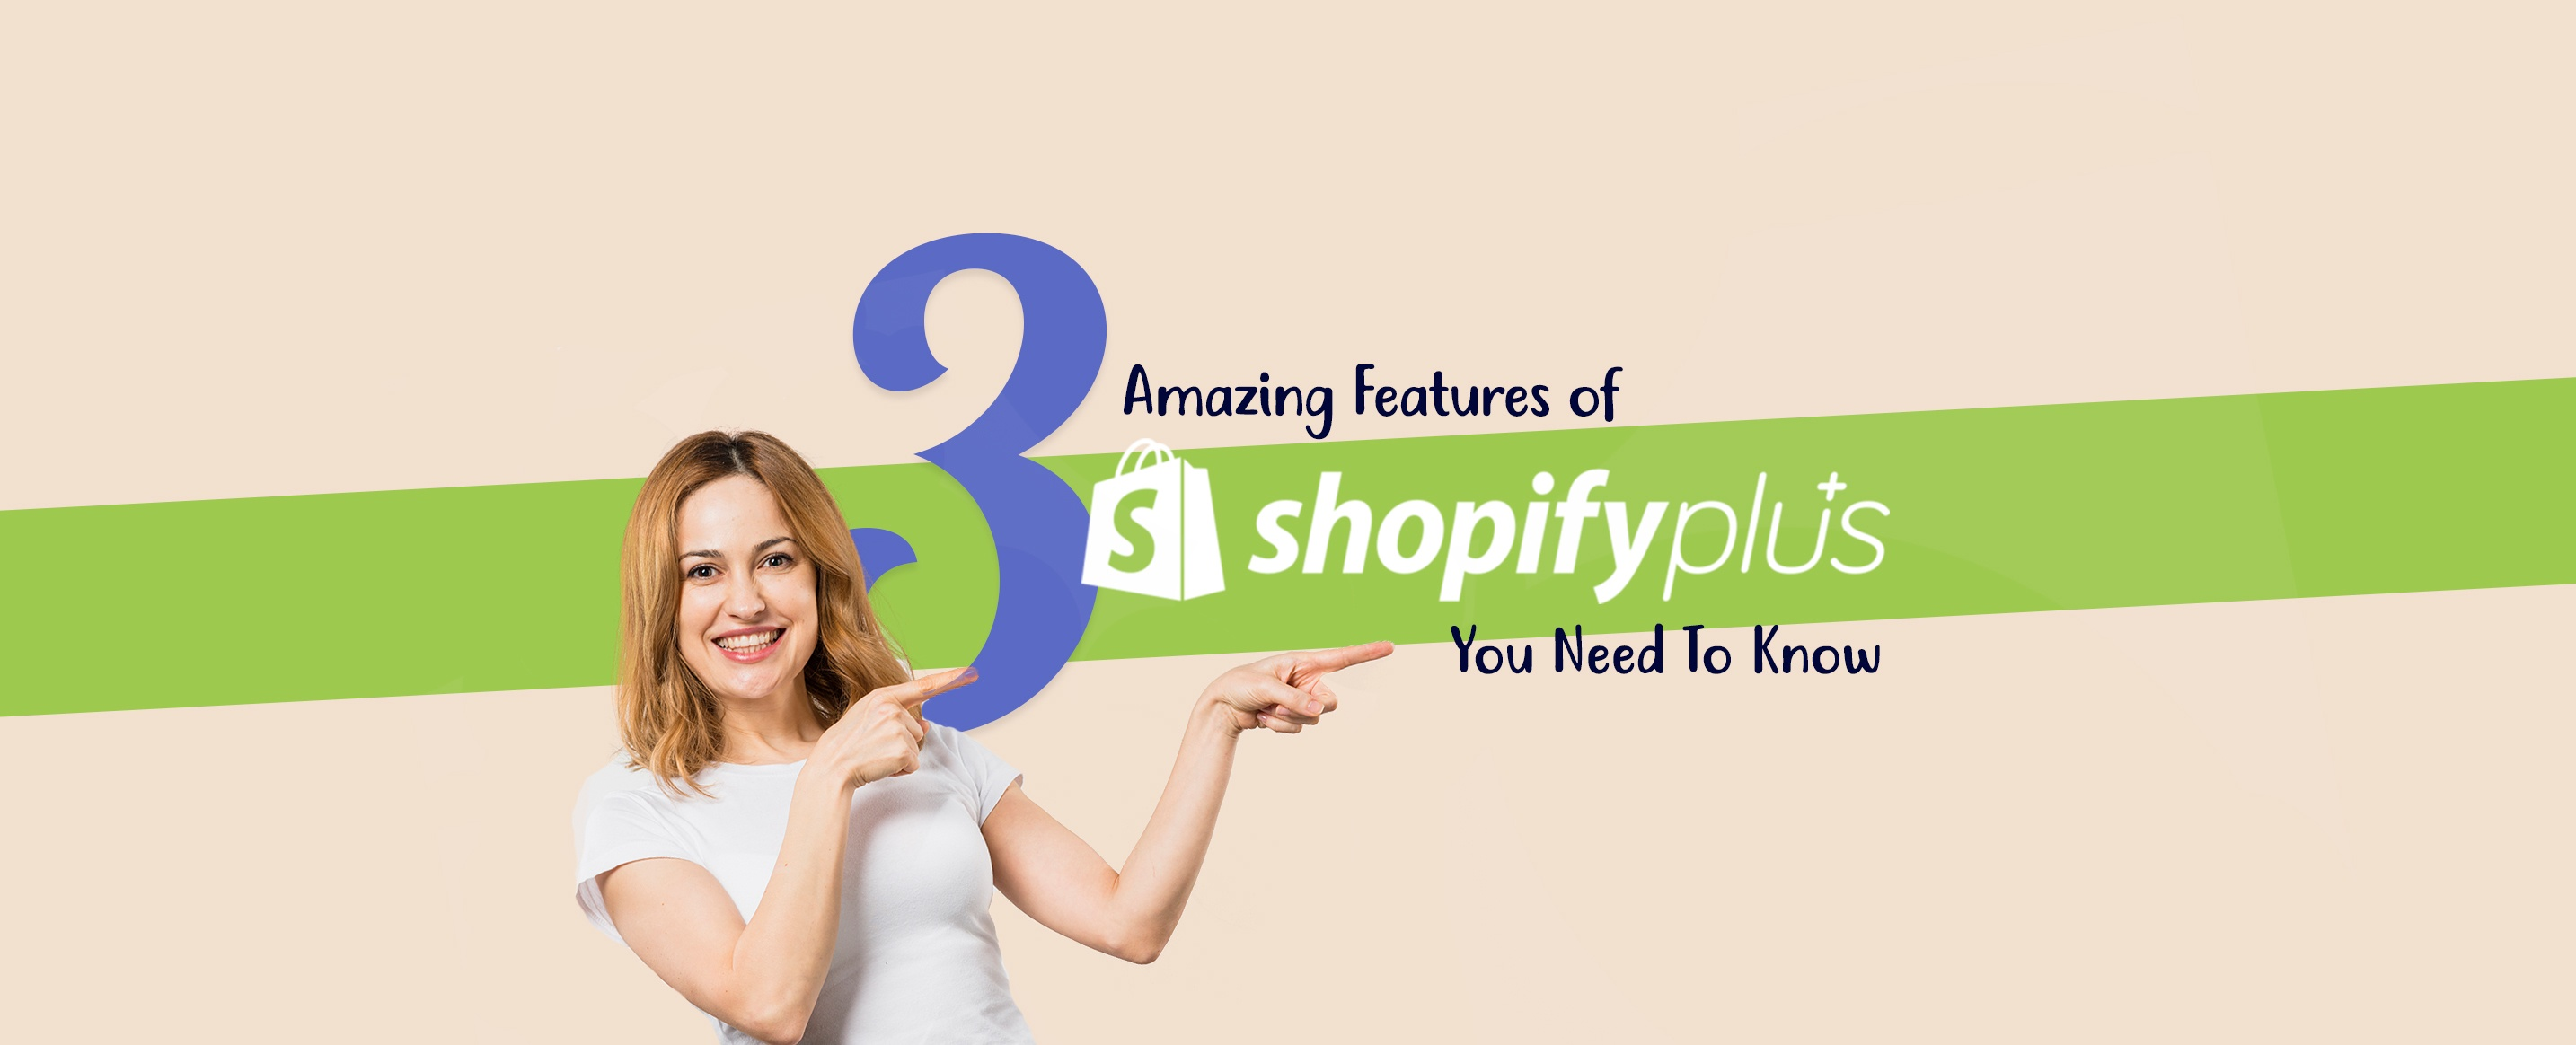 3-Amazing-Features-Of-Shopify-Plus-You-Need-To-Know